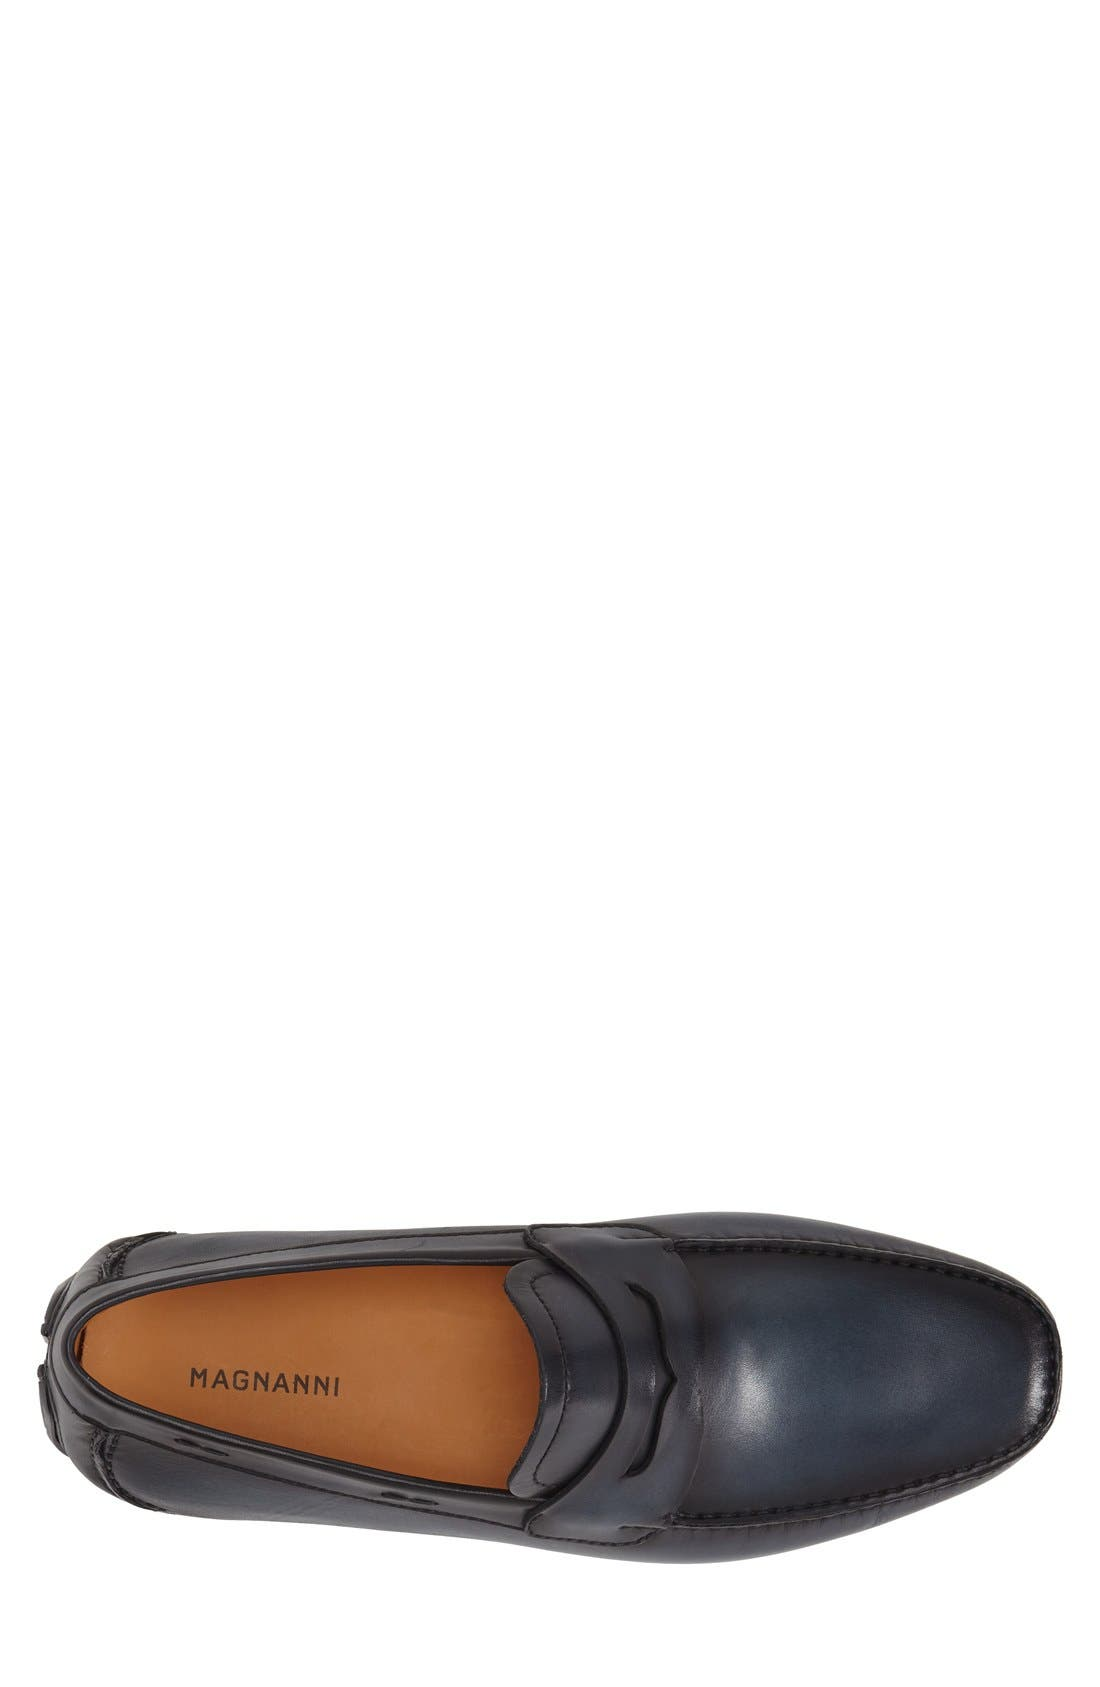 'Dylan' Leather Driving Shoe,                             Alternate thumbnail 14, color,